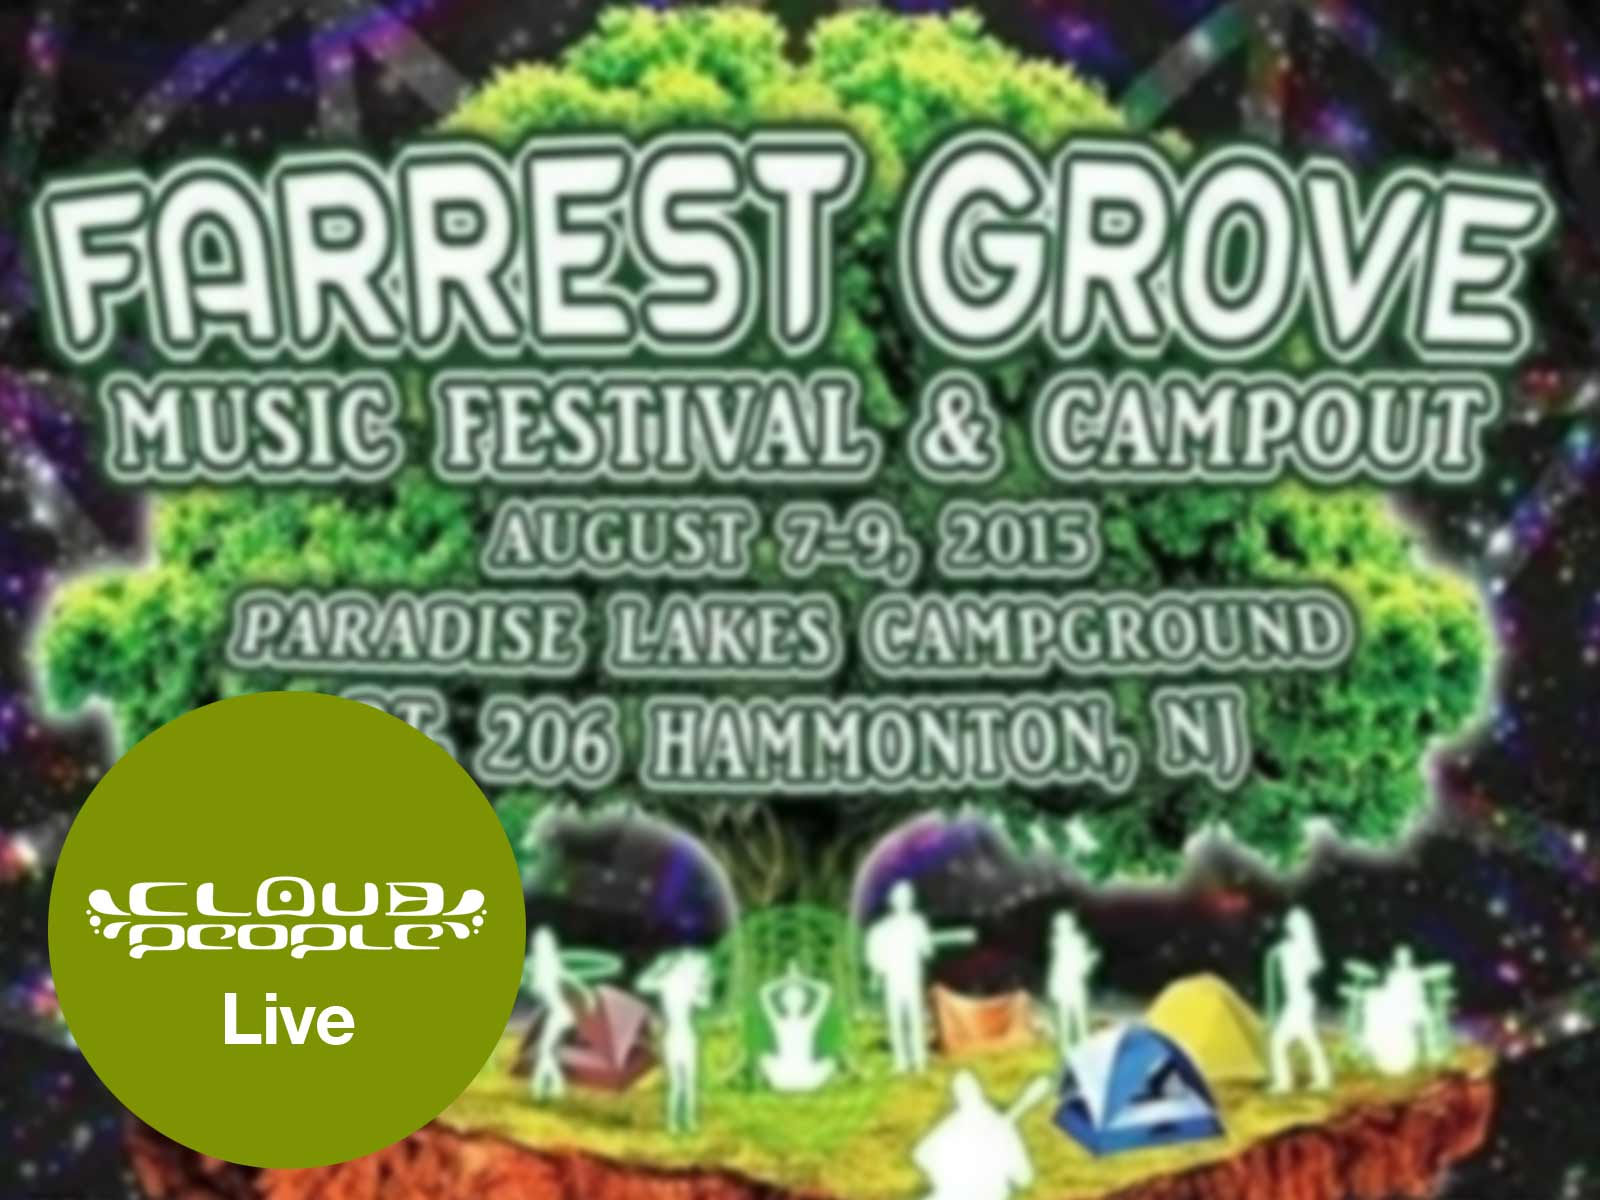 See Cloud People live in the pines at Farrest Grove Music Festival & Campout